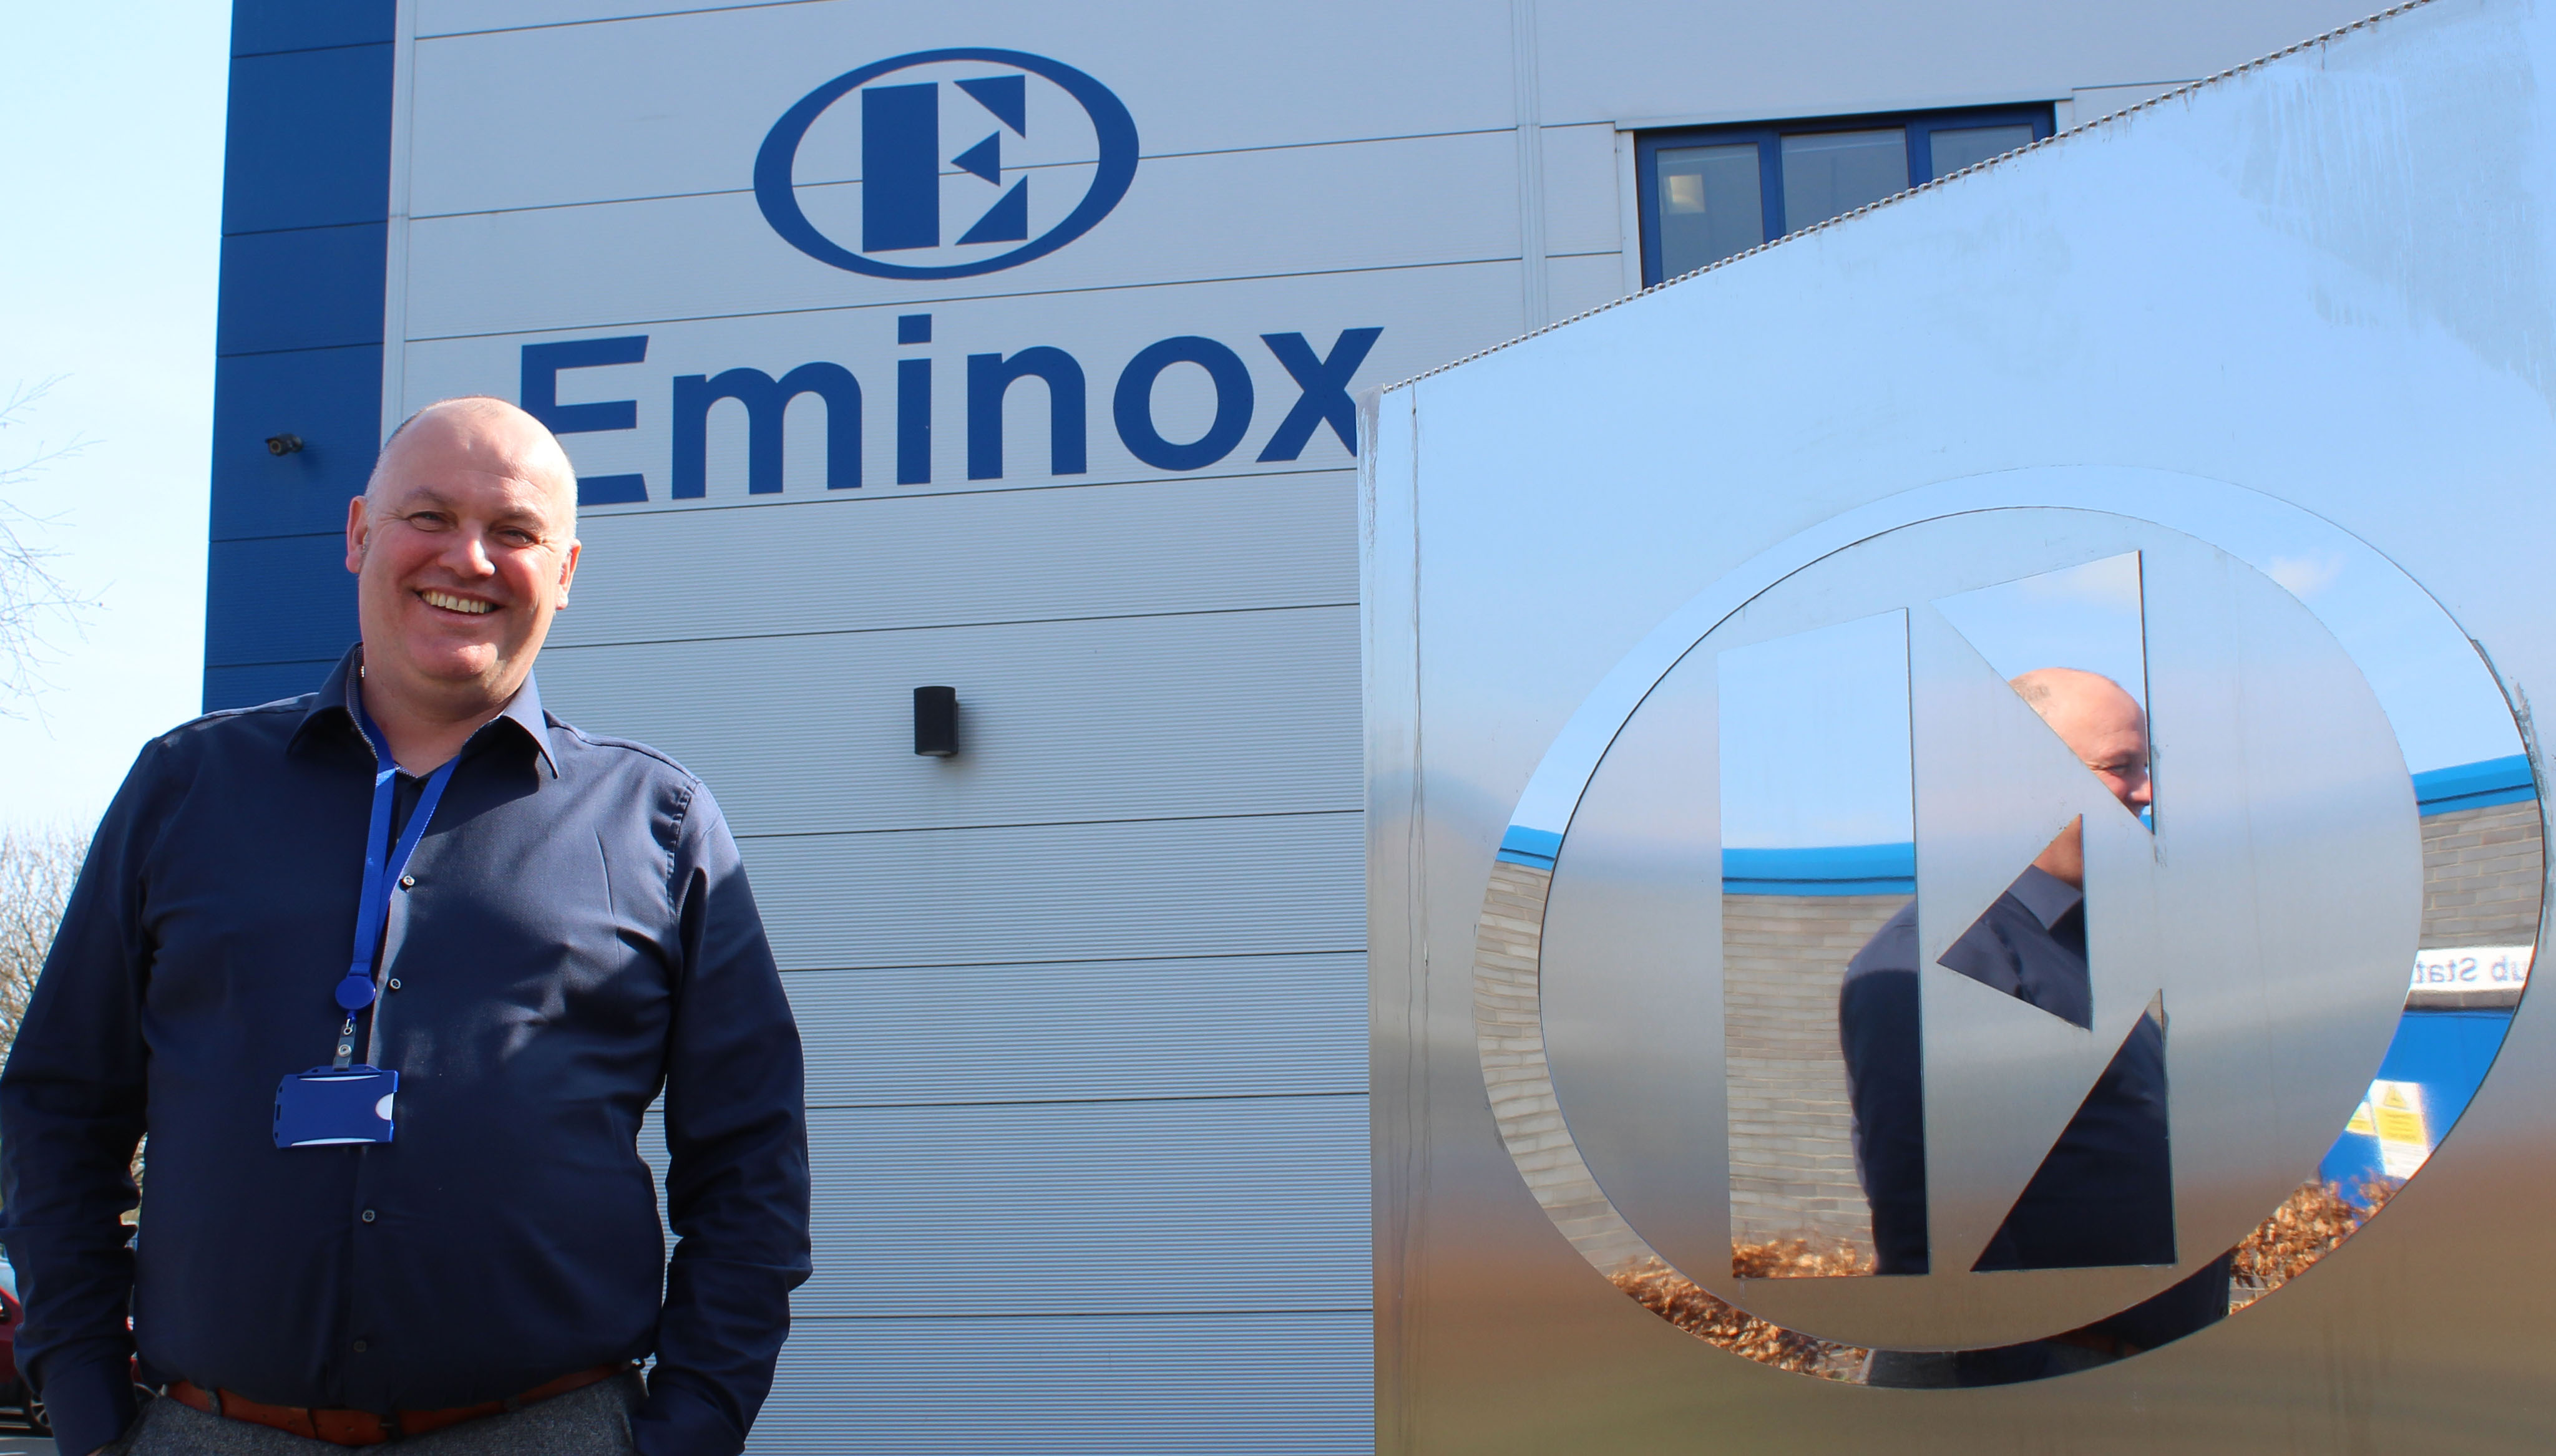 Martin Edwards, Operations Director for Eminox